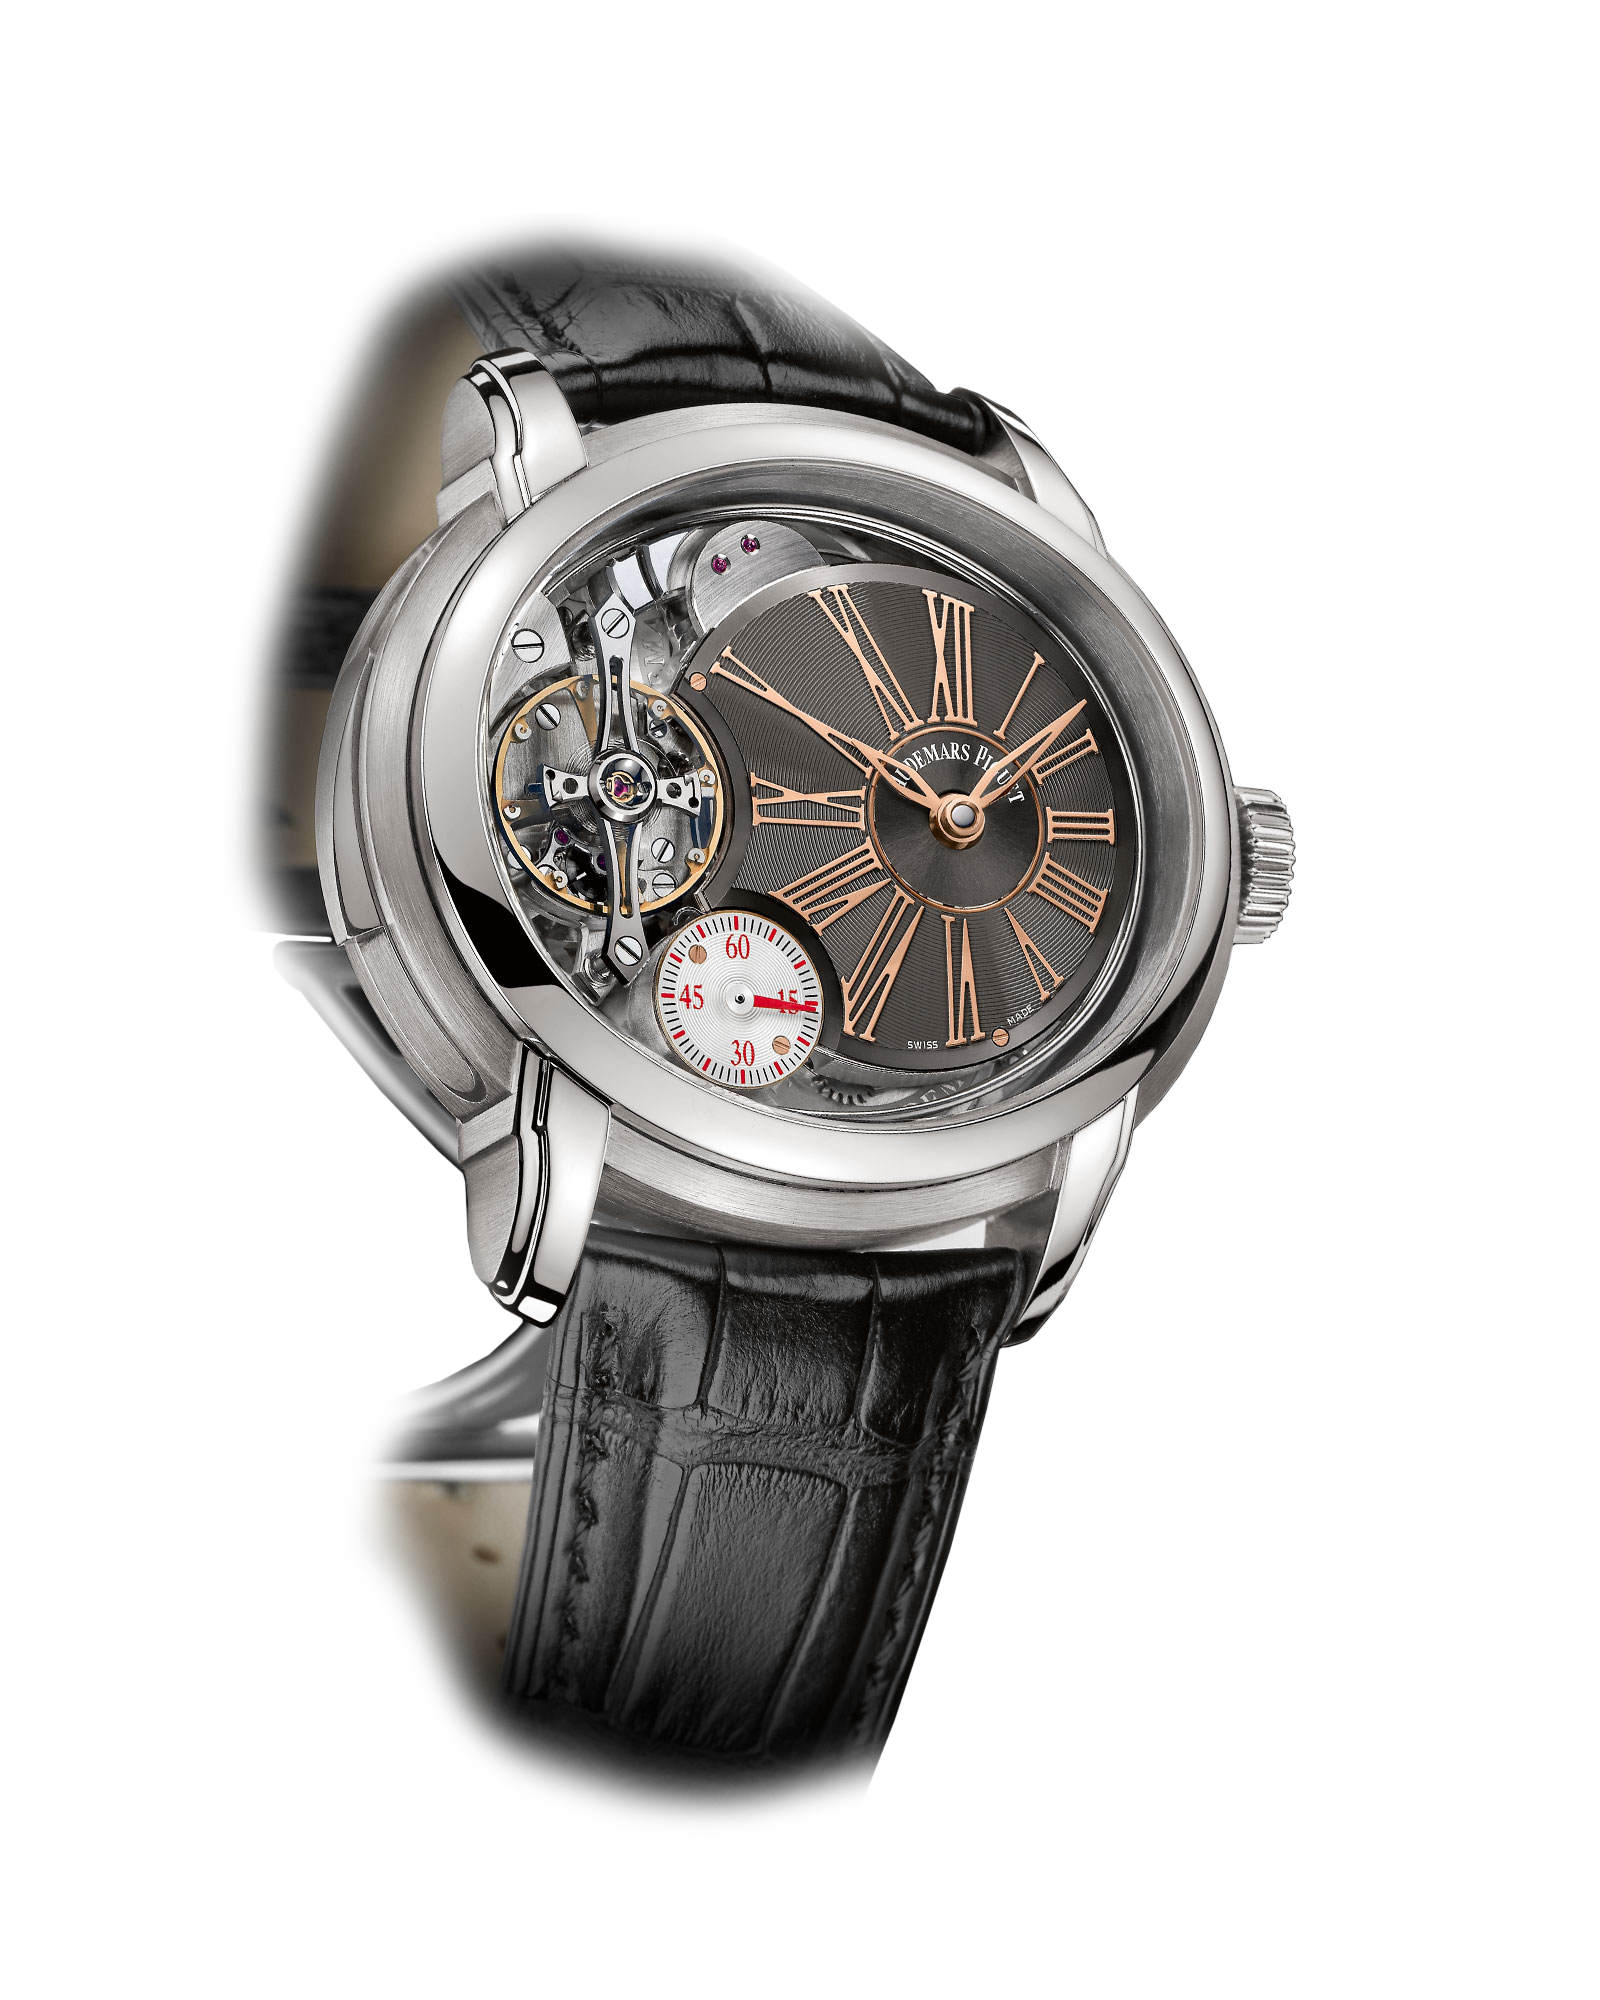 Audemars Piguet MINUTE REPEATER WITH AP ESCAPEMENT  26371TI.OO.D002CR.01